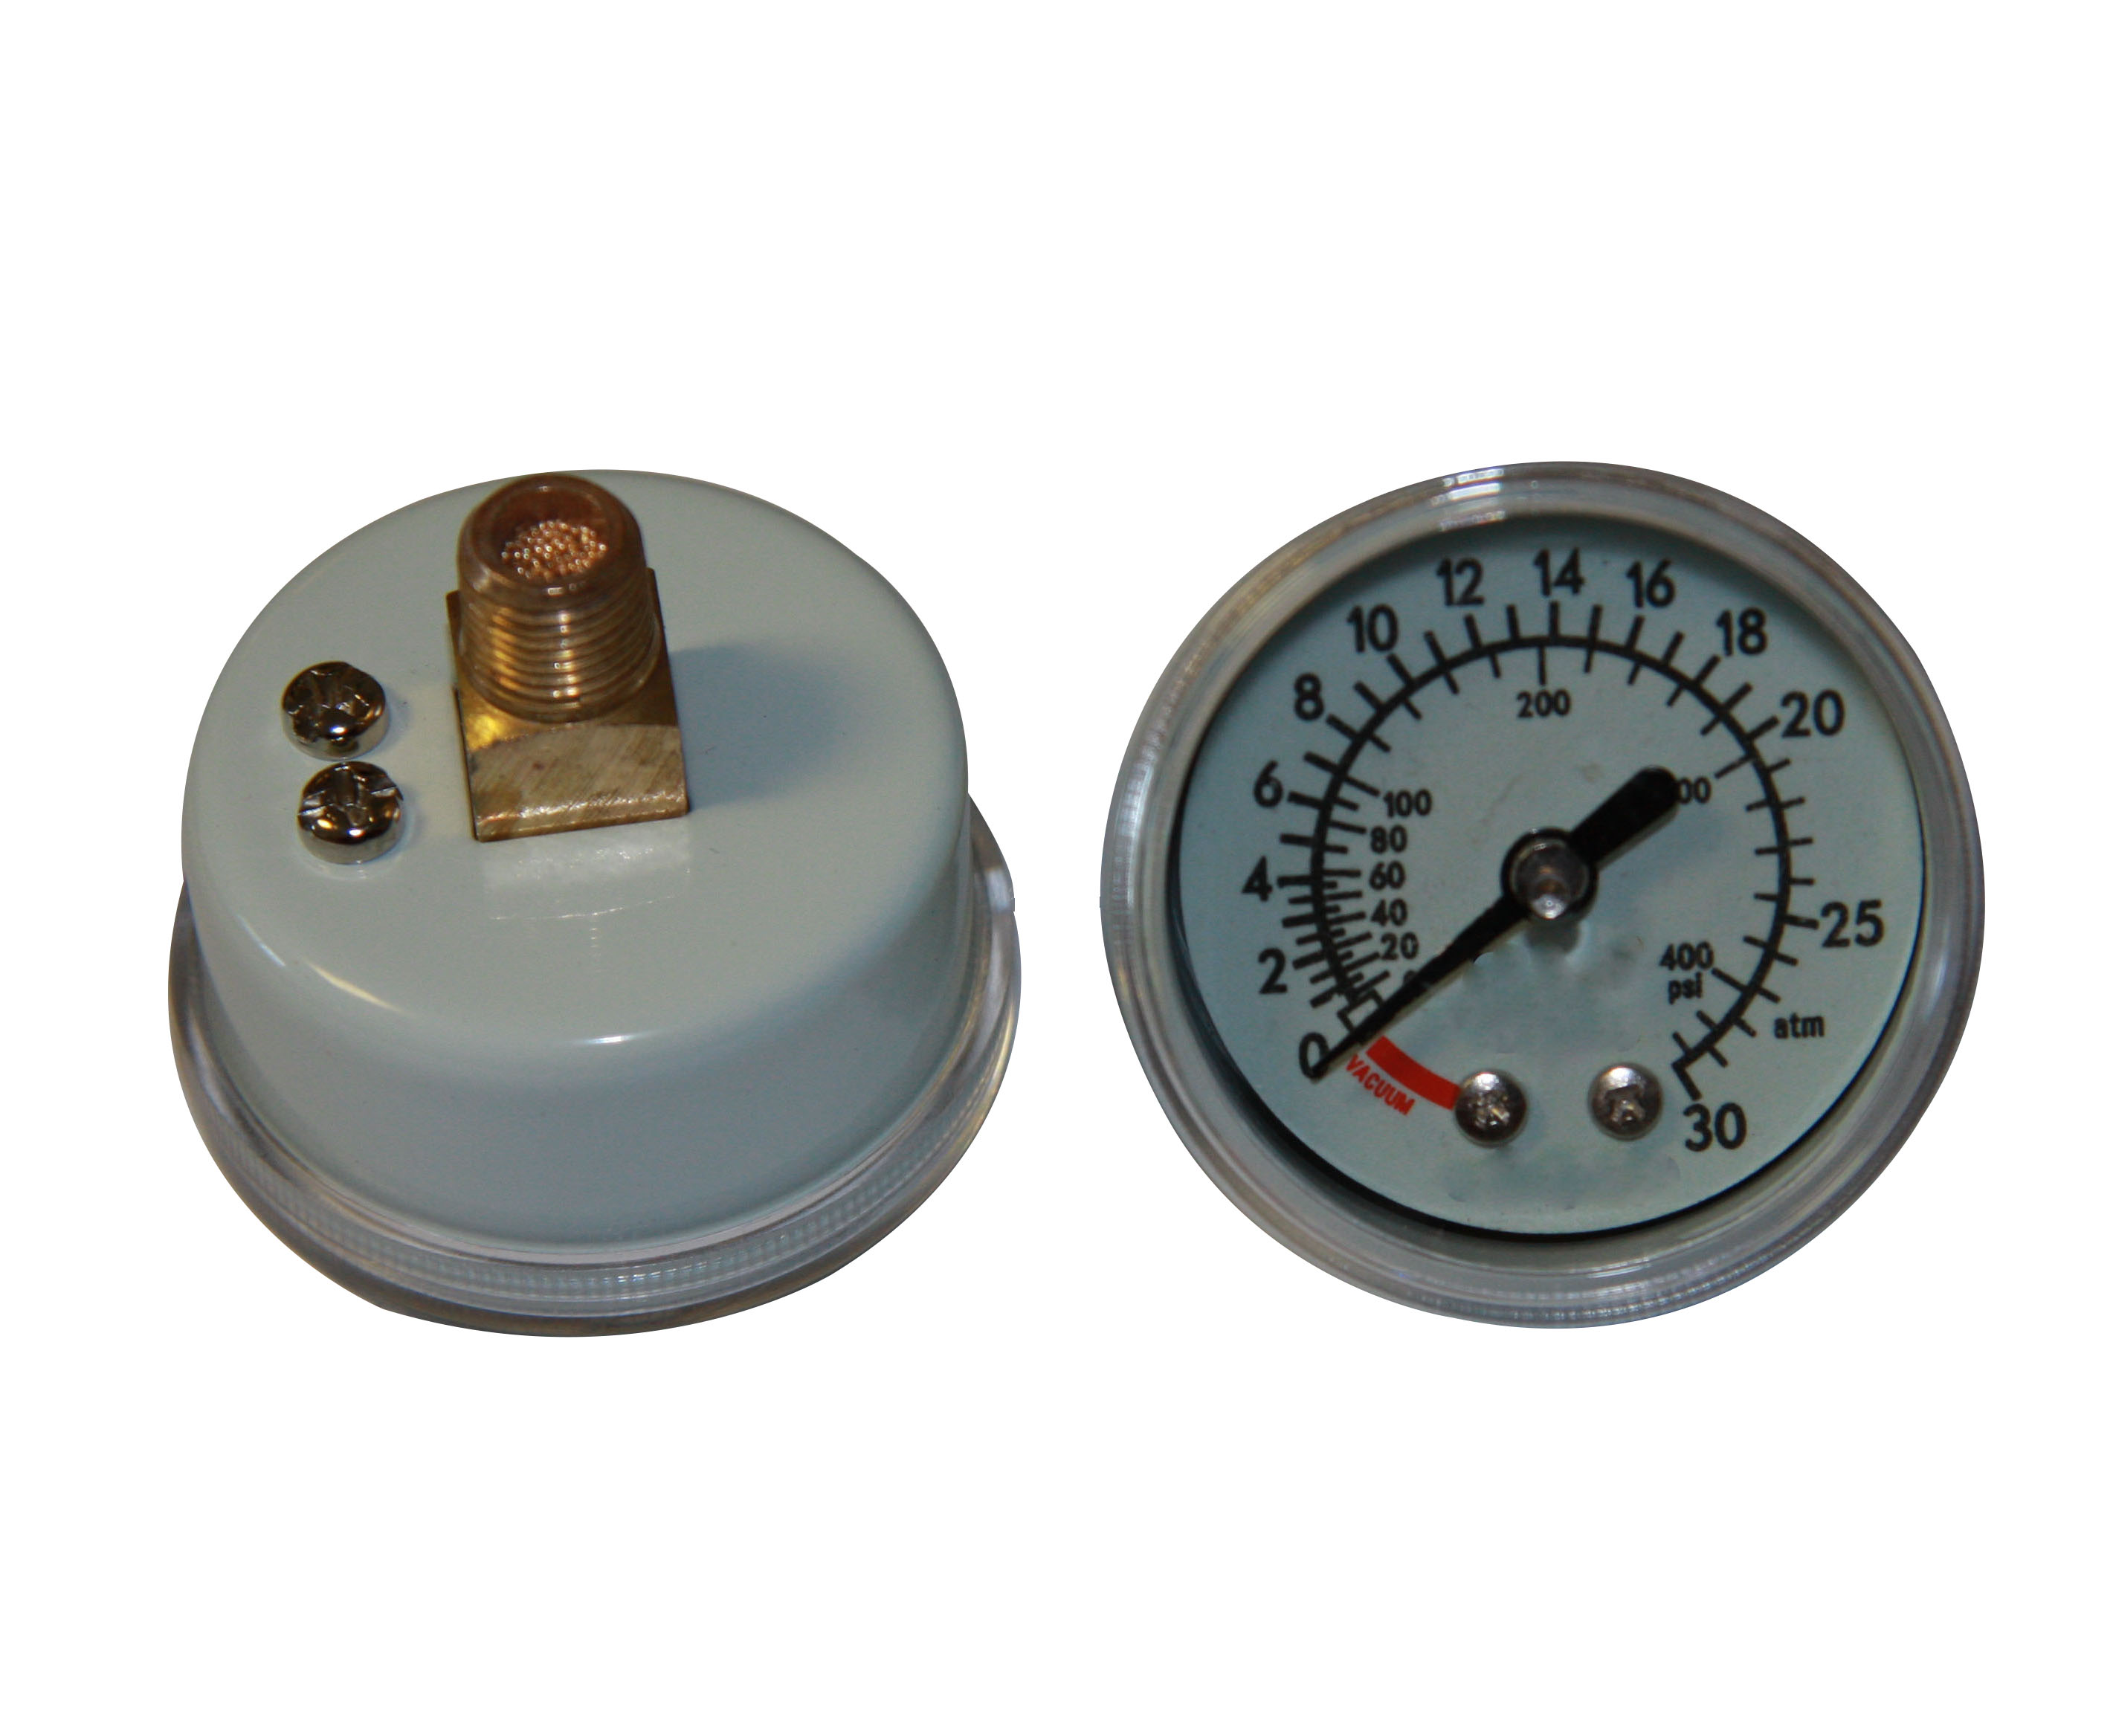 30atm steel case medical pressure gauge inflation